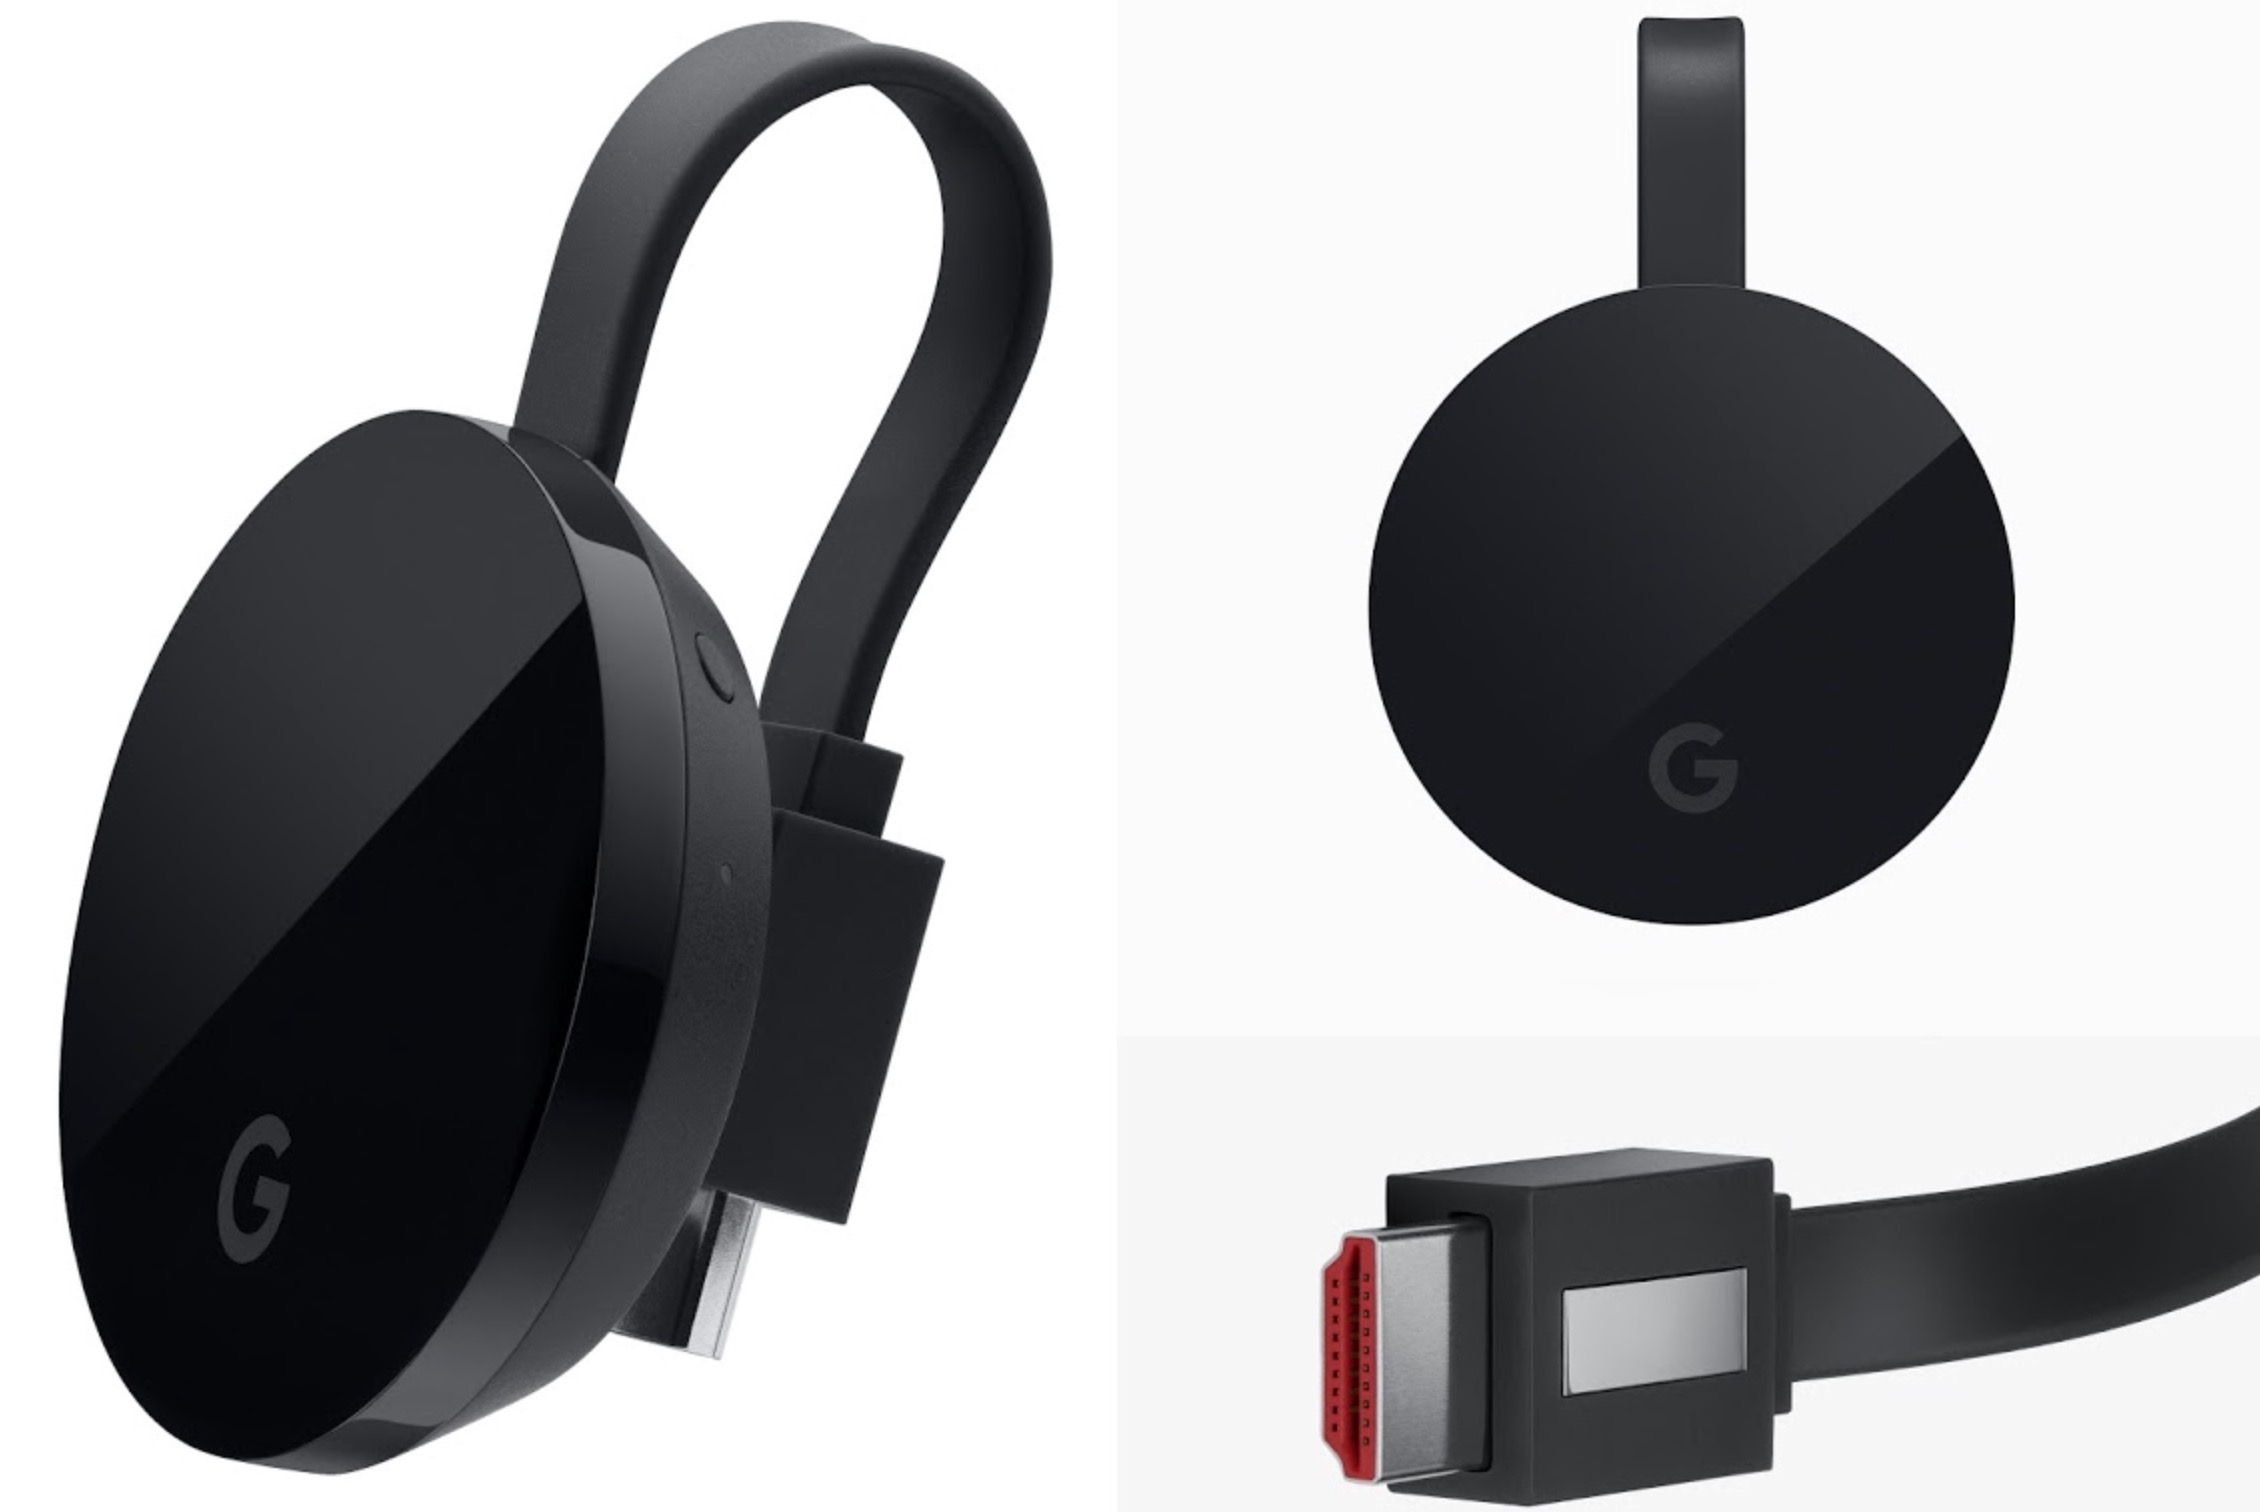 Google Chromecast design e specifiche tecniche